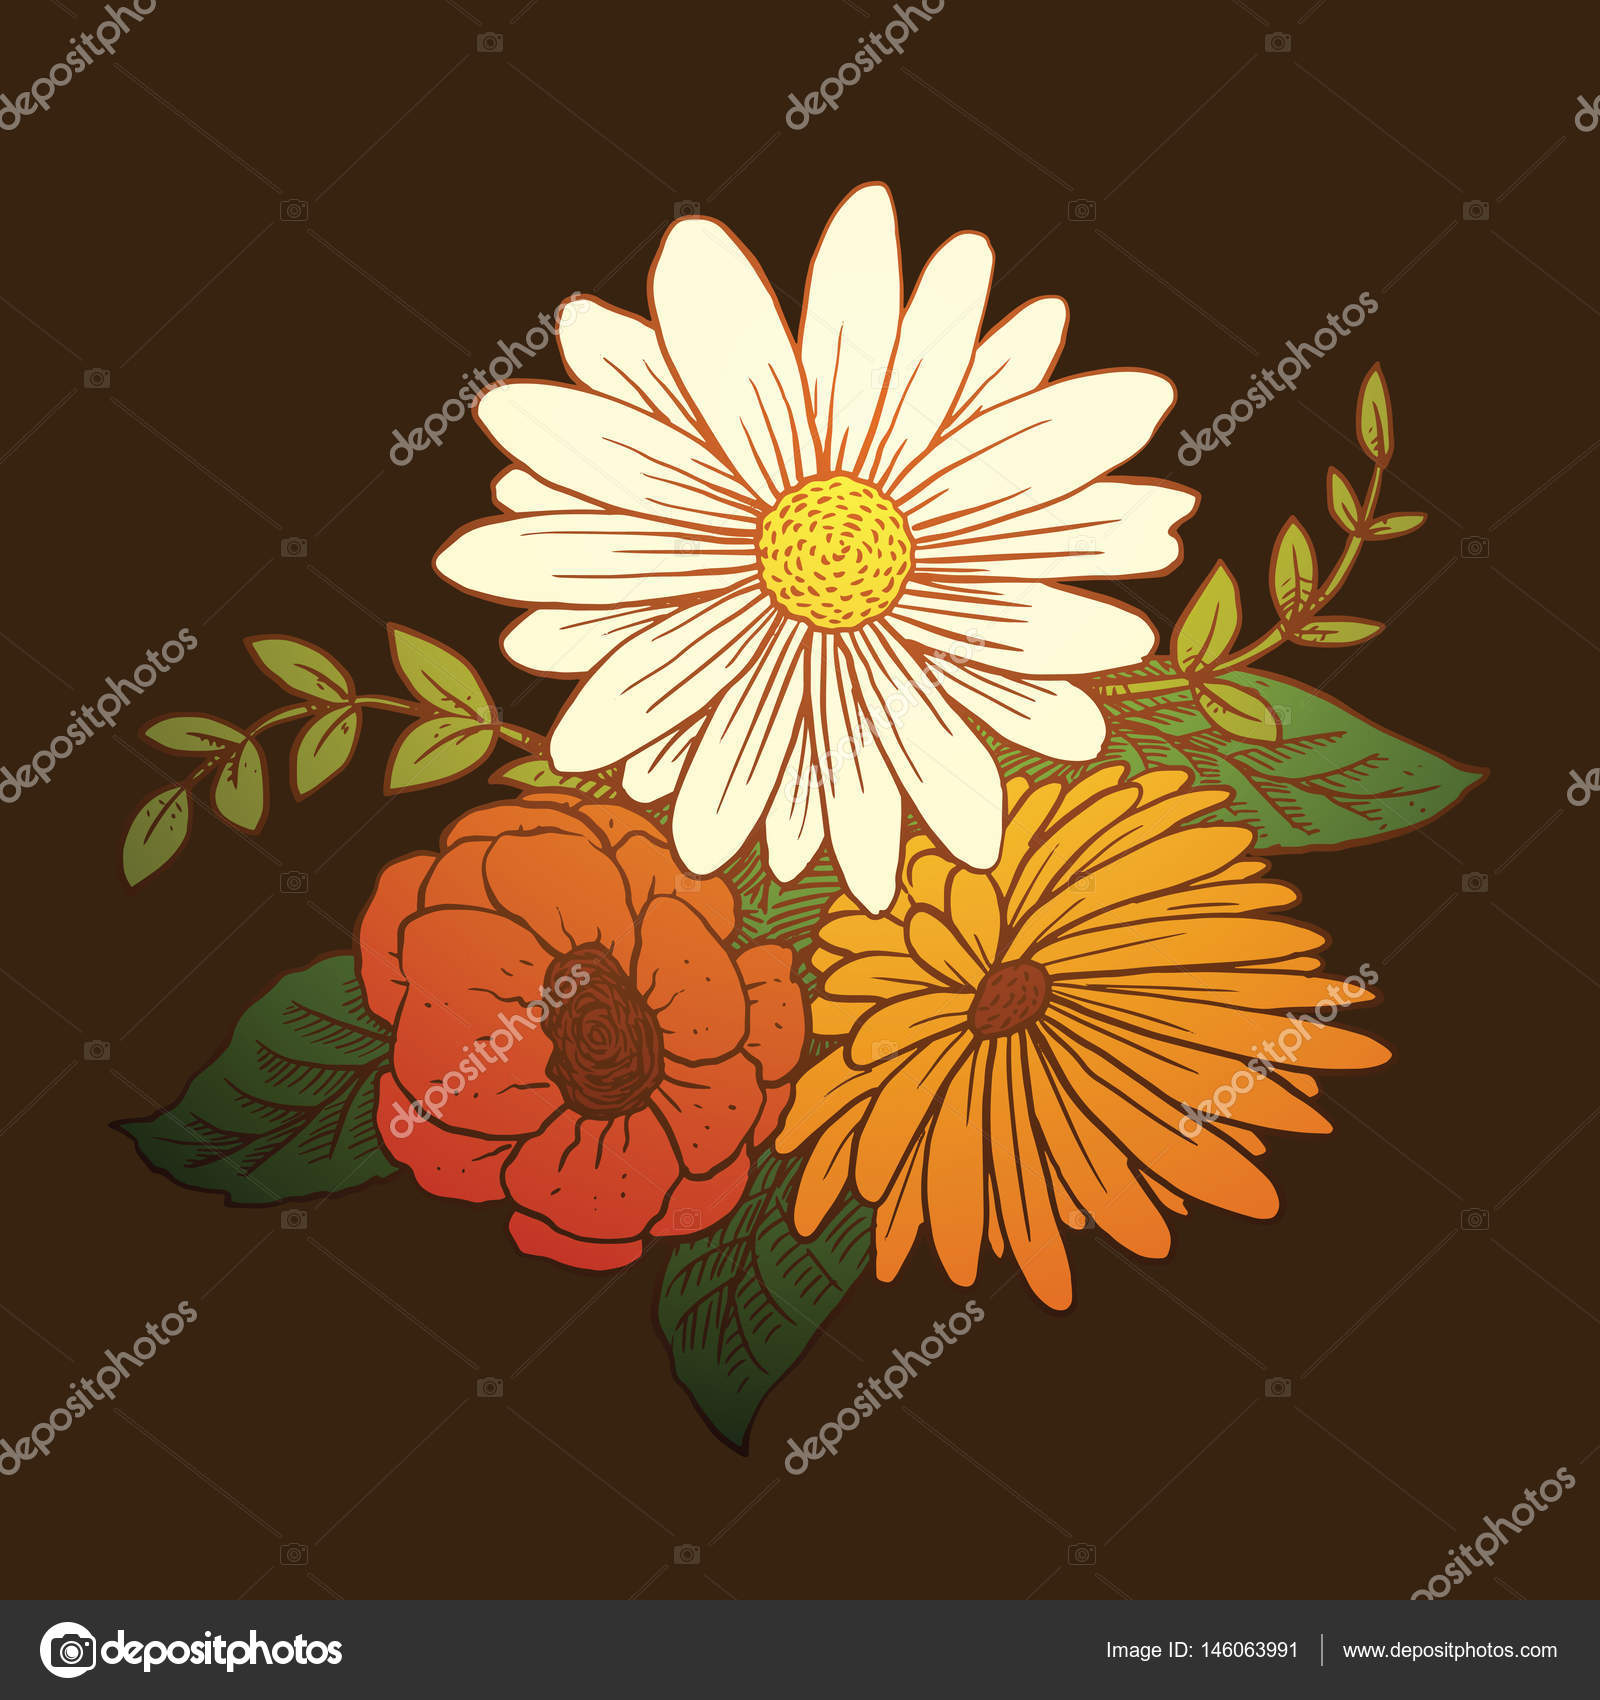 Bouquet daisies poppies chrysanthemum color image stock vector vector image of a beautiful bouquet of different types of flowers white daisies red poppies yellow chrysanthemum green leaves on a dark background izmirmasajfo